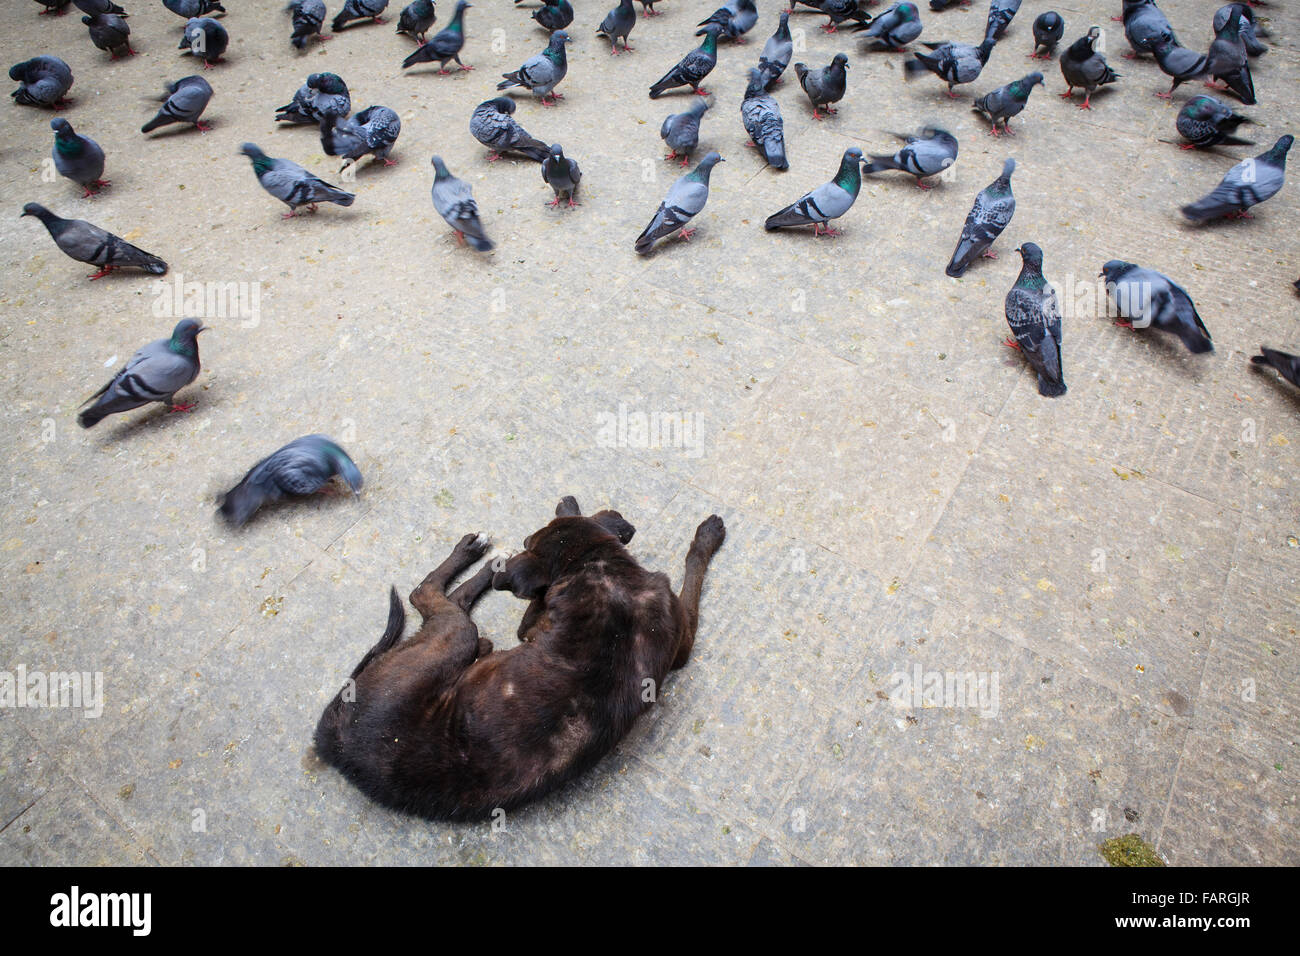 Black dog and pigeons in the street. Kathmandu. Nepal. Stock Photo